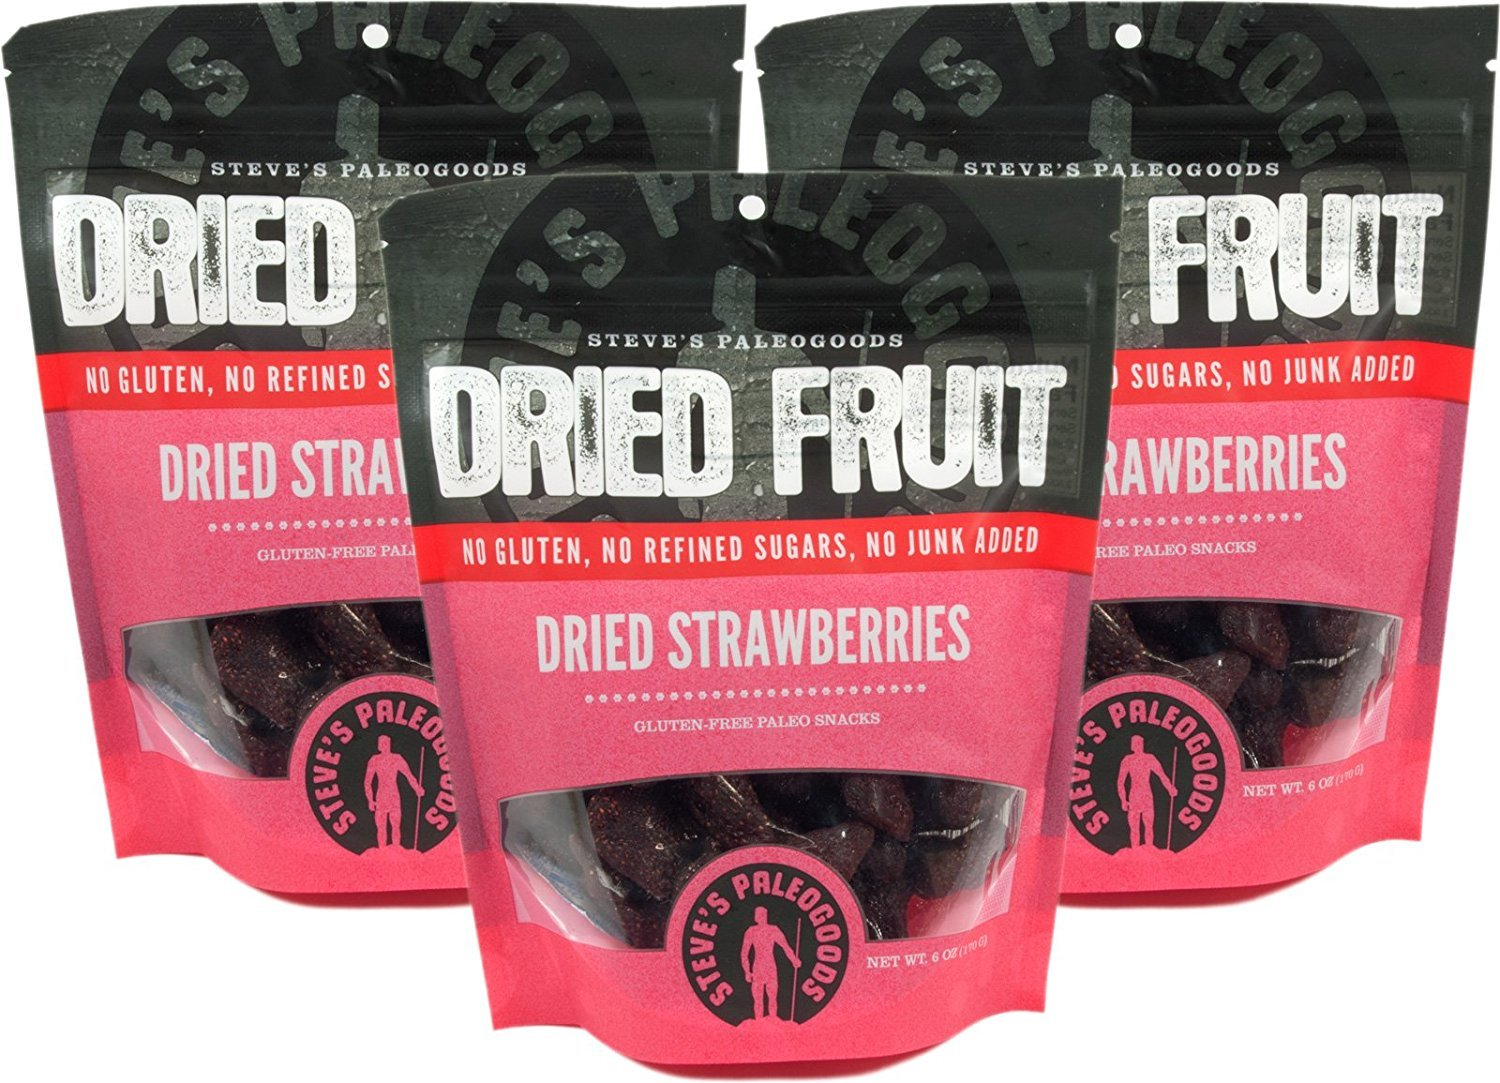 Steve's PaleoGoods, Dried Fruit Strawberries, 6 oz (Pack of 3)